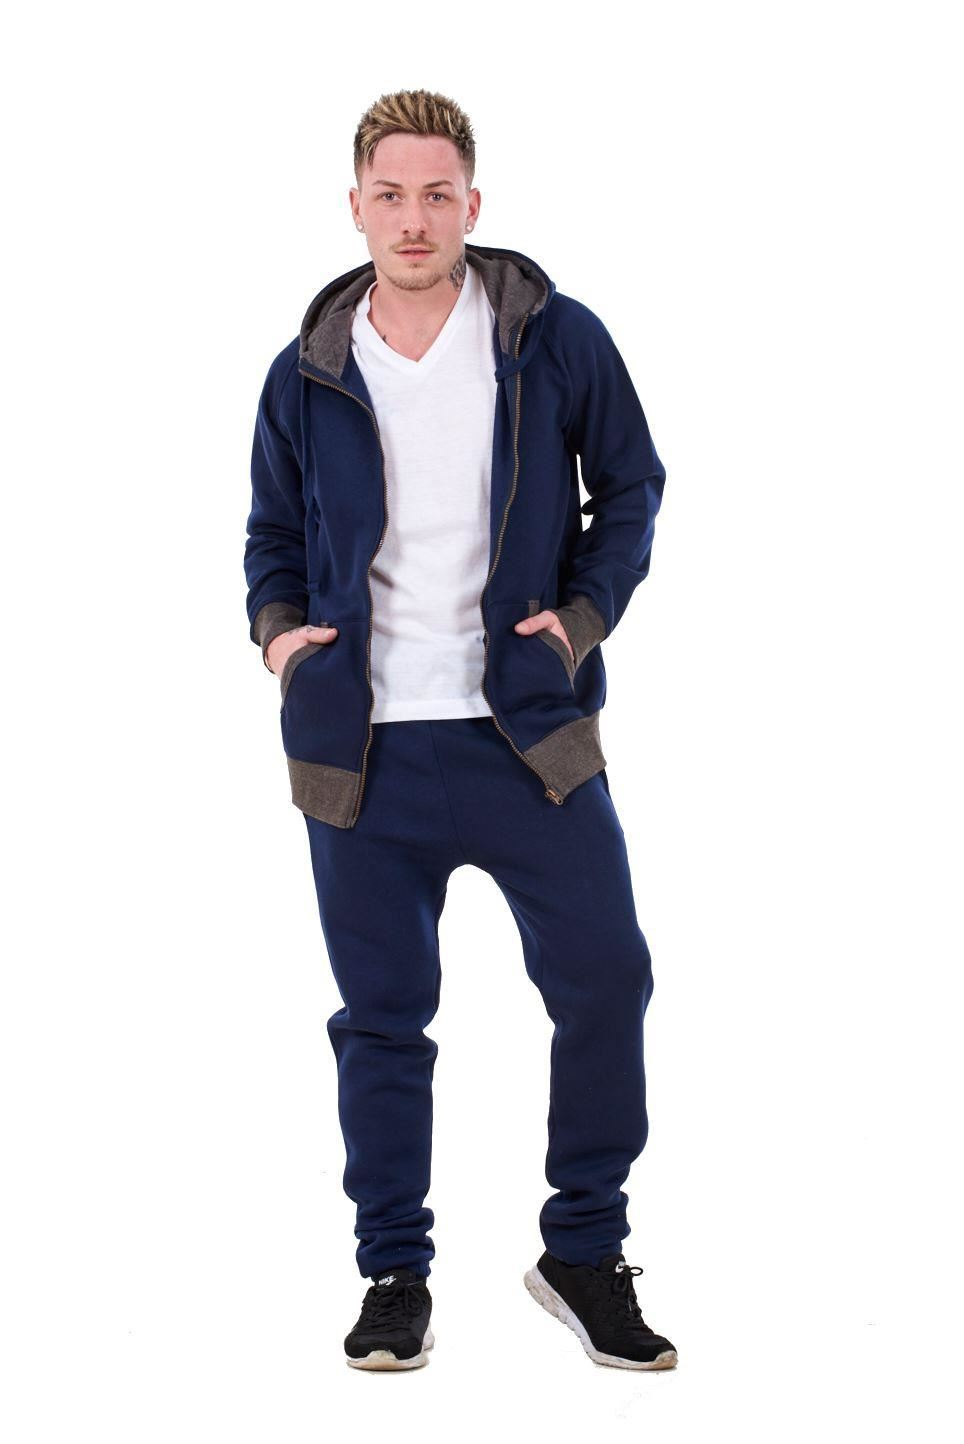 New-Mens-Tracksuit-Branded-Fleece-Hooded-Zipper-Cotton-Jogging-Bottoms-S-to-XXL thumbnail 12